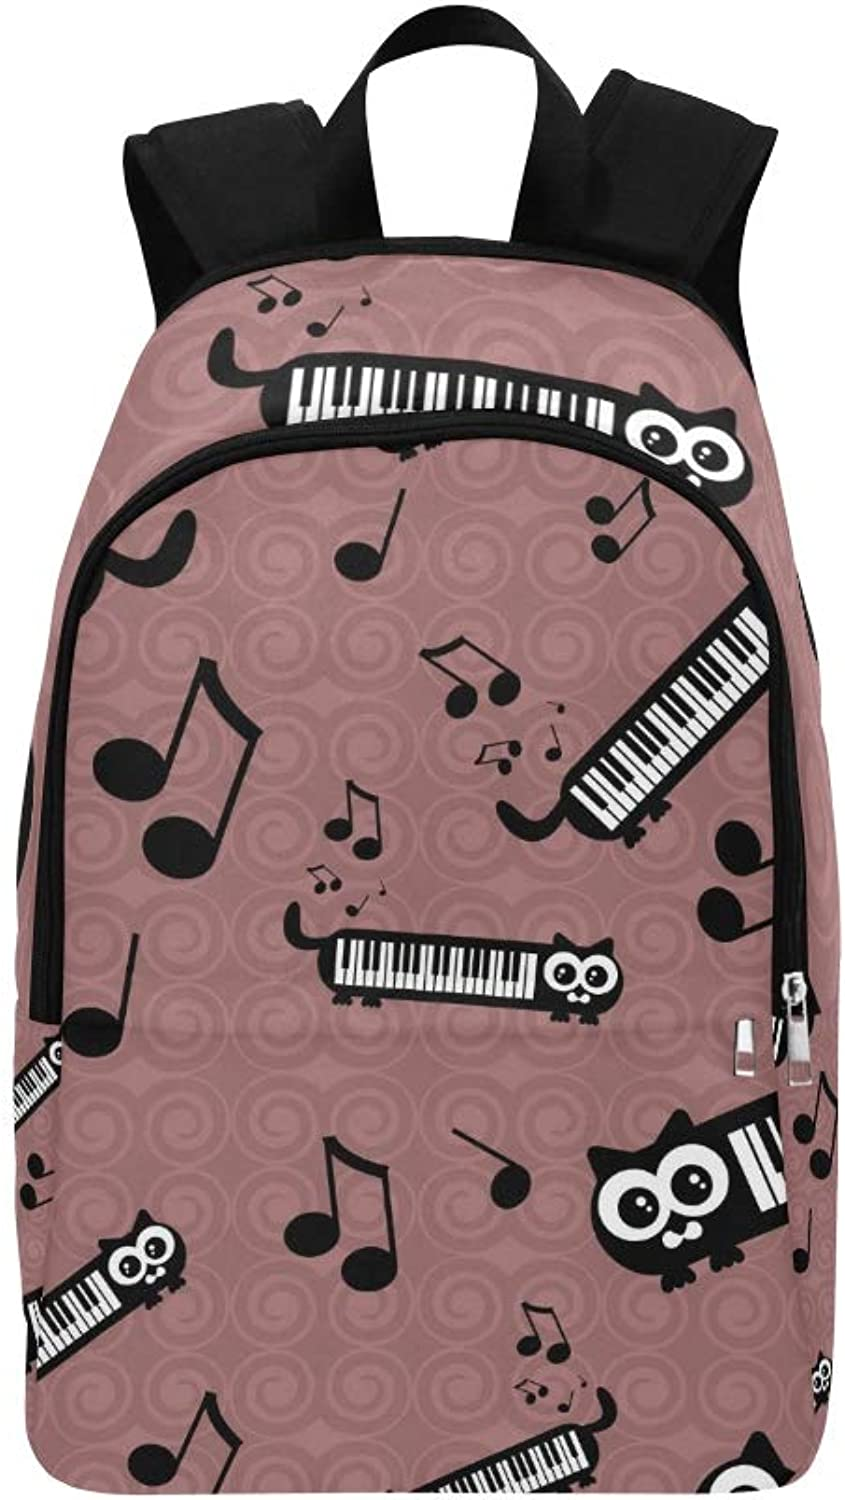 Cute Funny Cats Musical Casual Daypack Travel Bag College School Backpack for Mens and Women